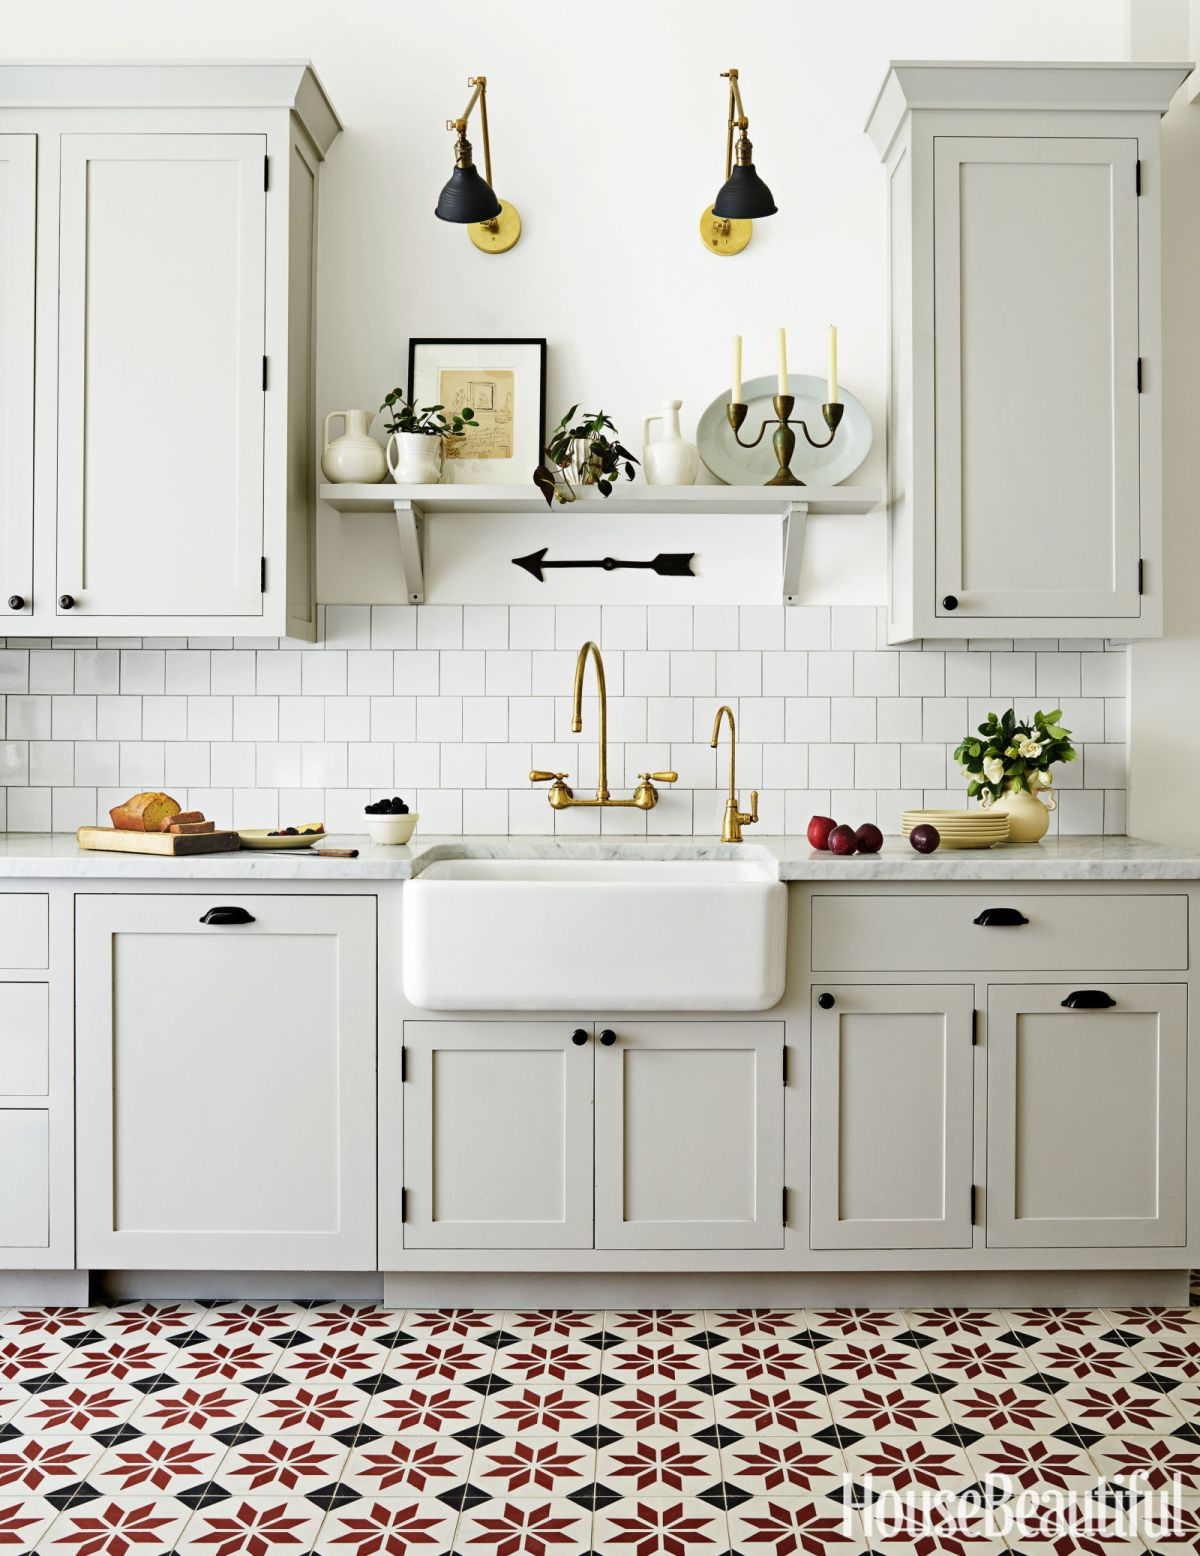 18 beautiful examples of kitchen floor tile view in gallery dailygadgetfo Gallery